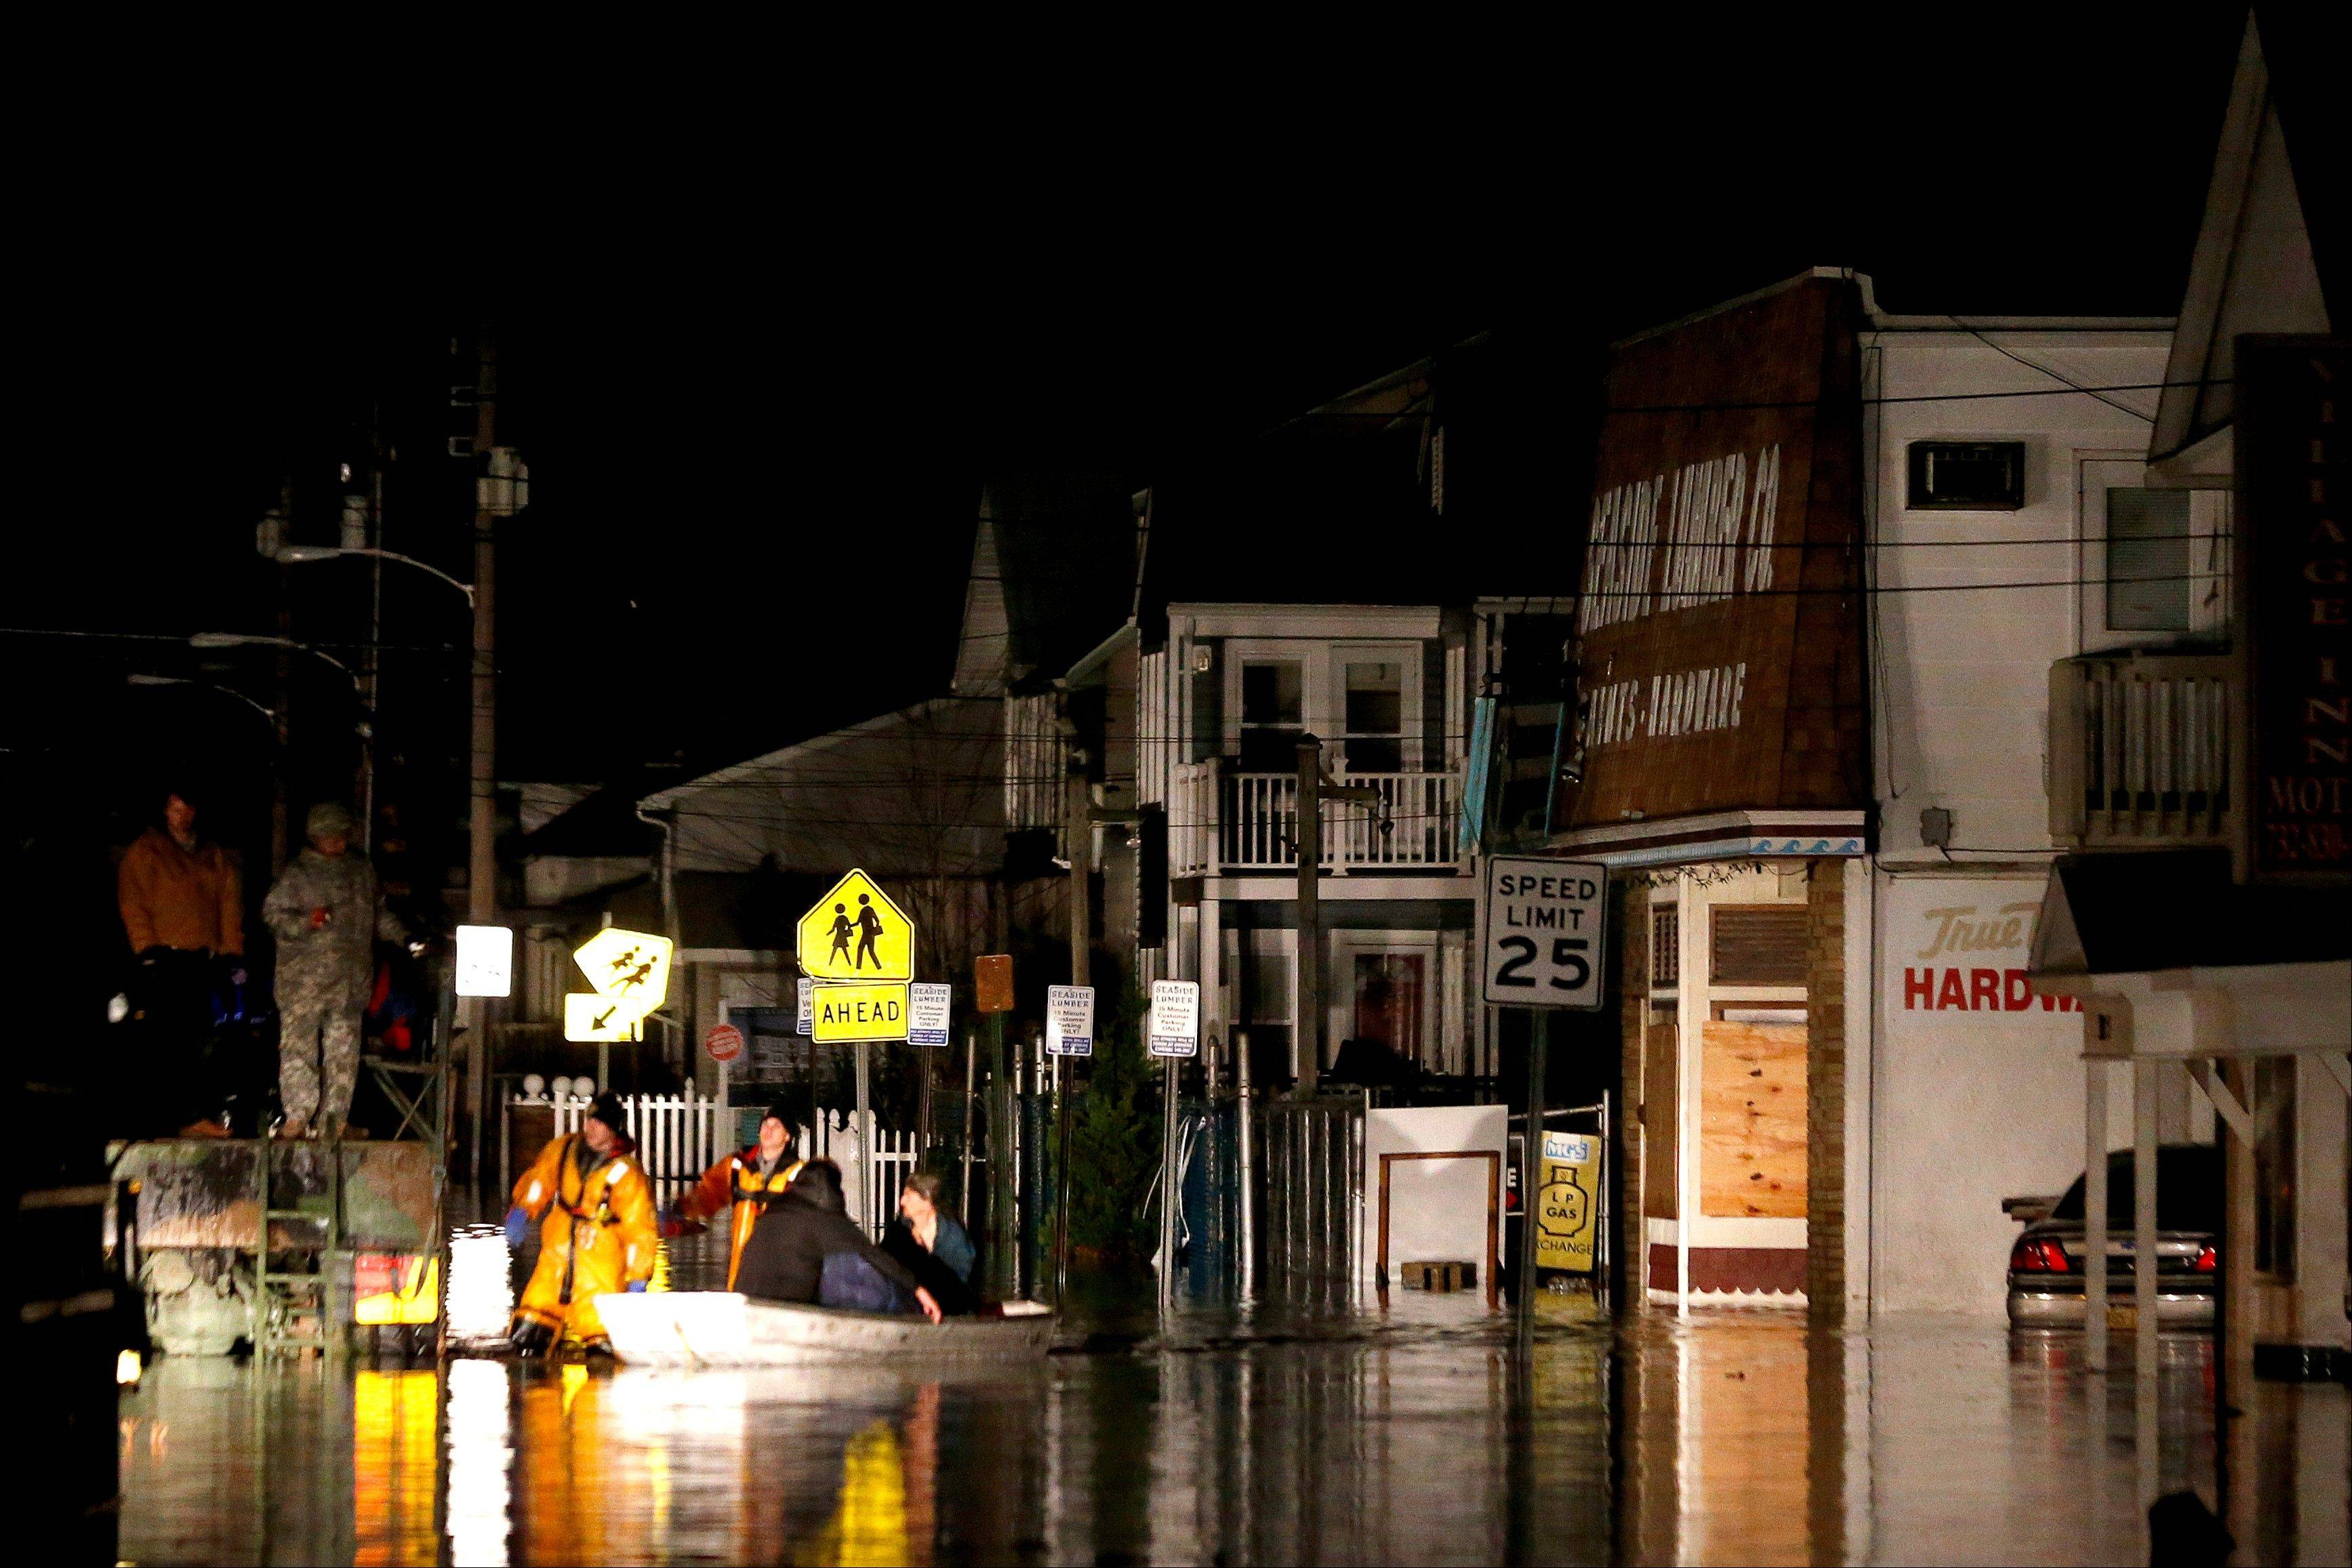 Rescue workers help stranded people out of their flooded homes in Seaside Heights, N.J., following the arrival of Superstorm Sandy, Tuesday.